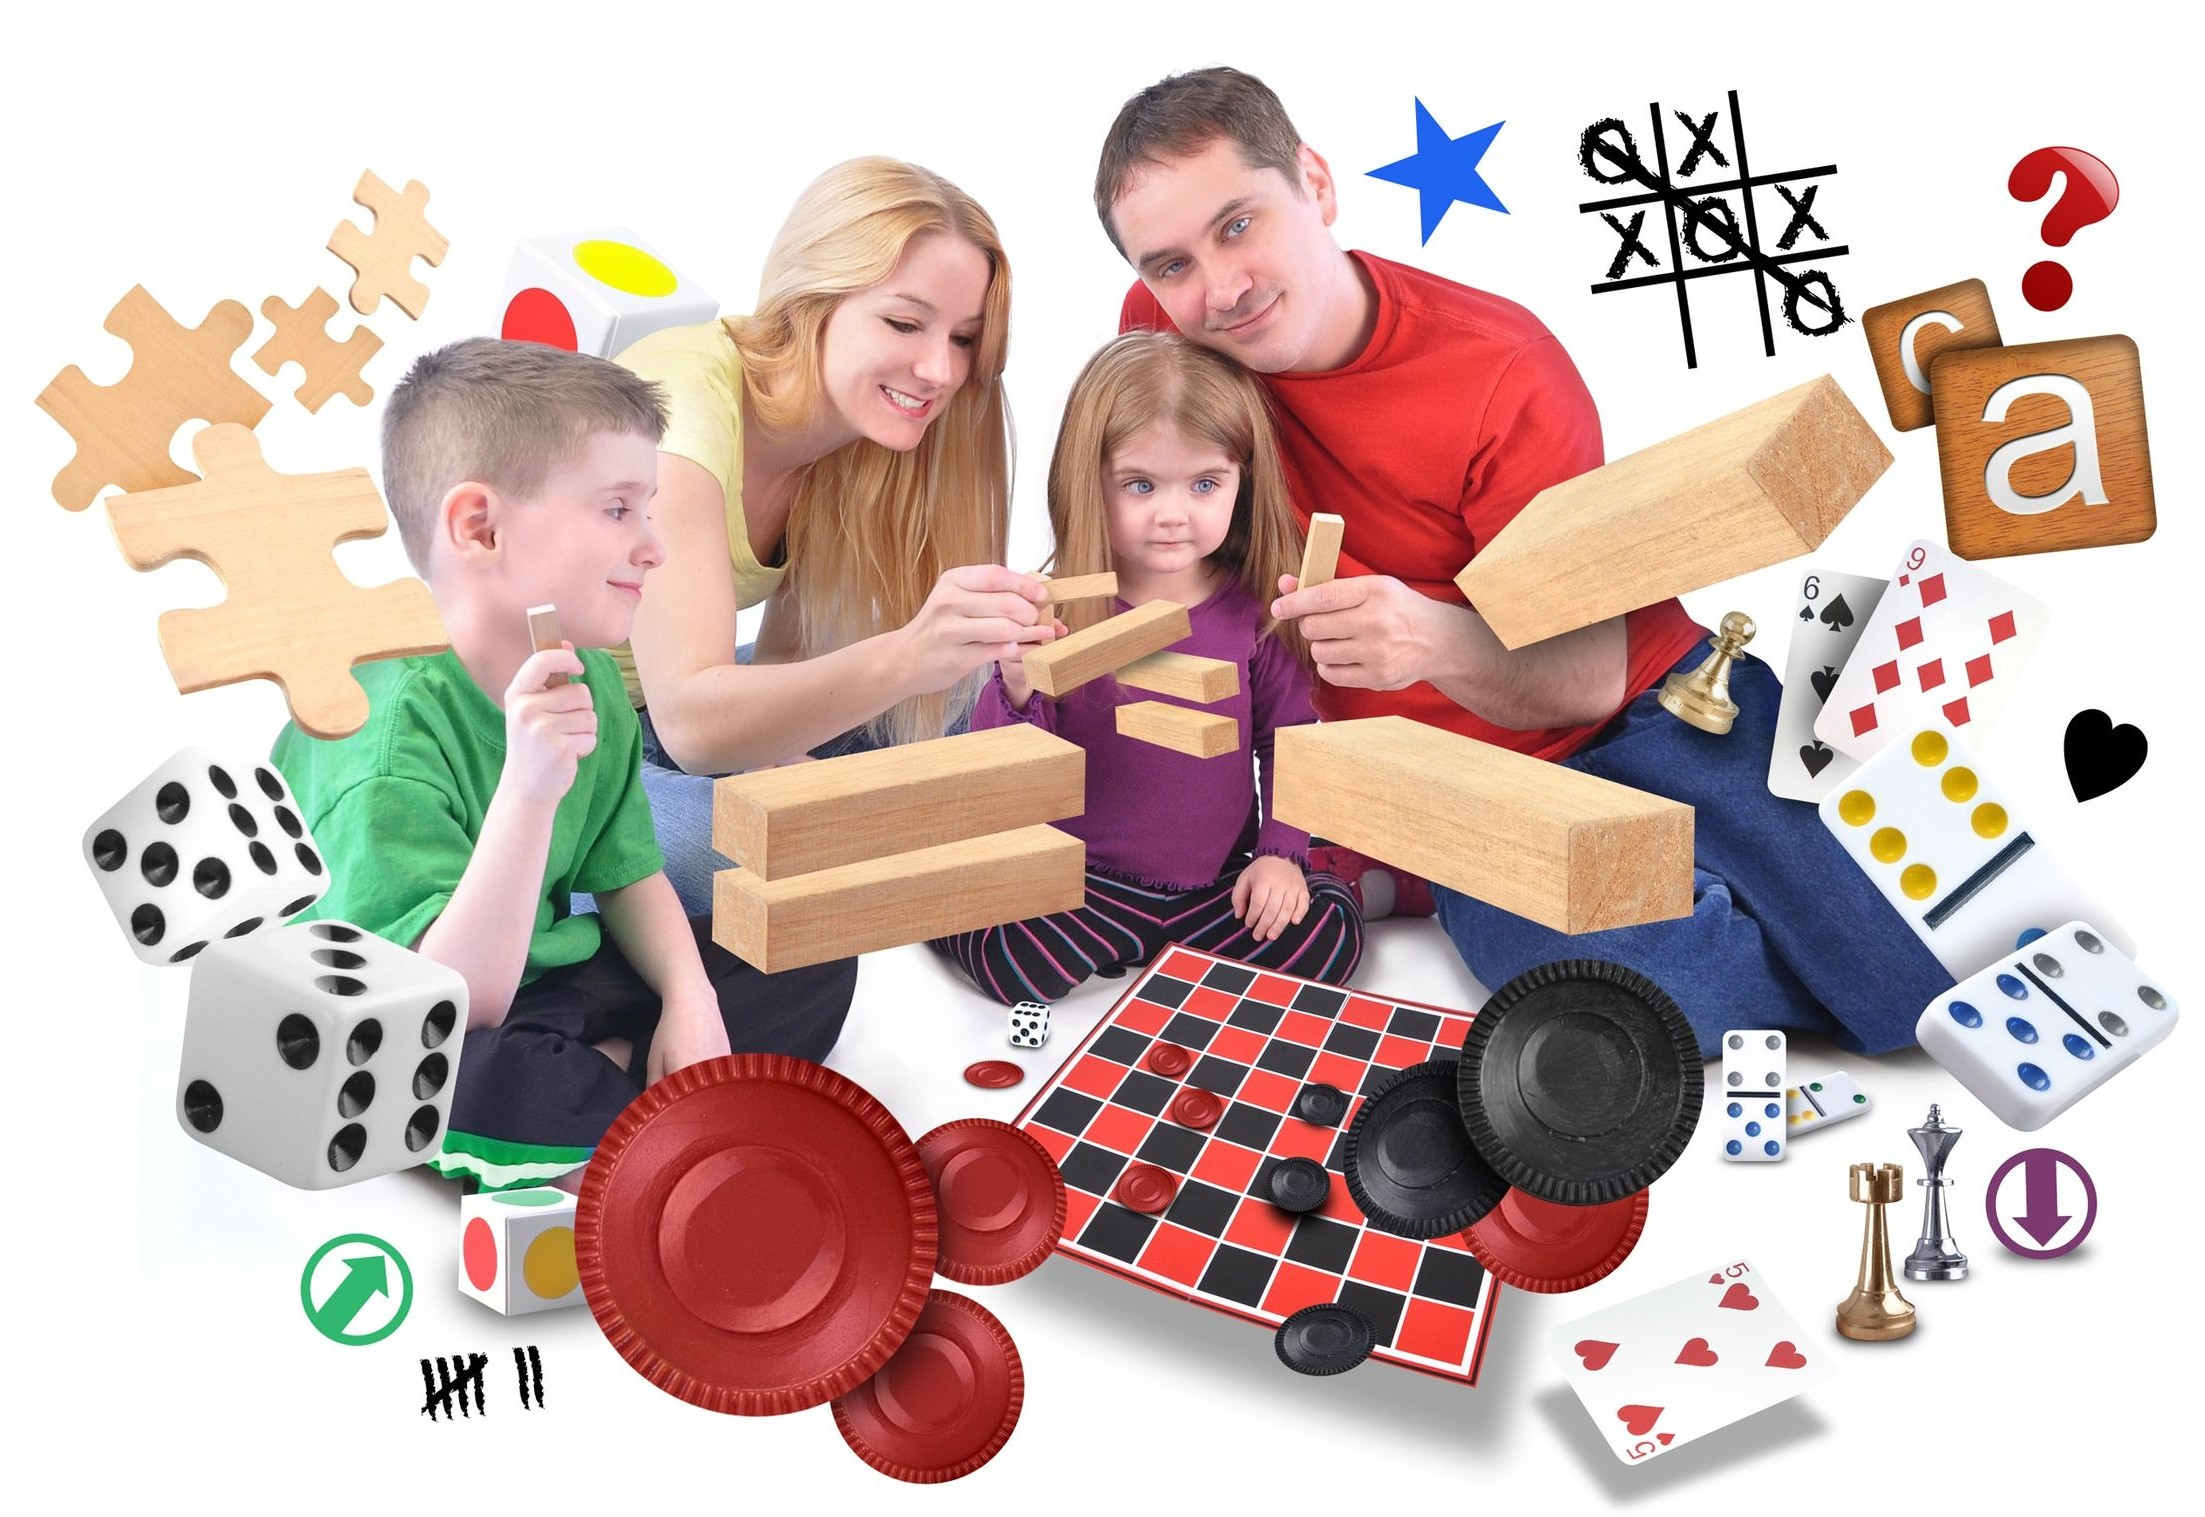 Create a Life-sized Board Game! Because What Kid Doesn't Think Bigger is Better?